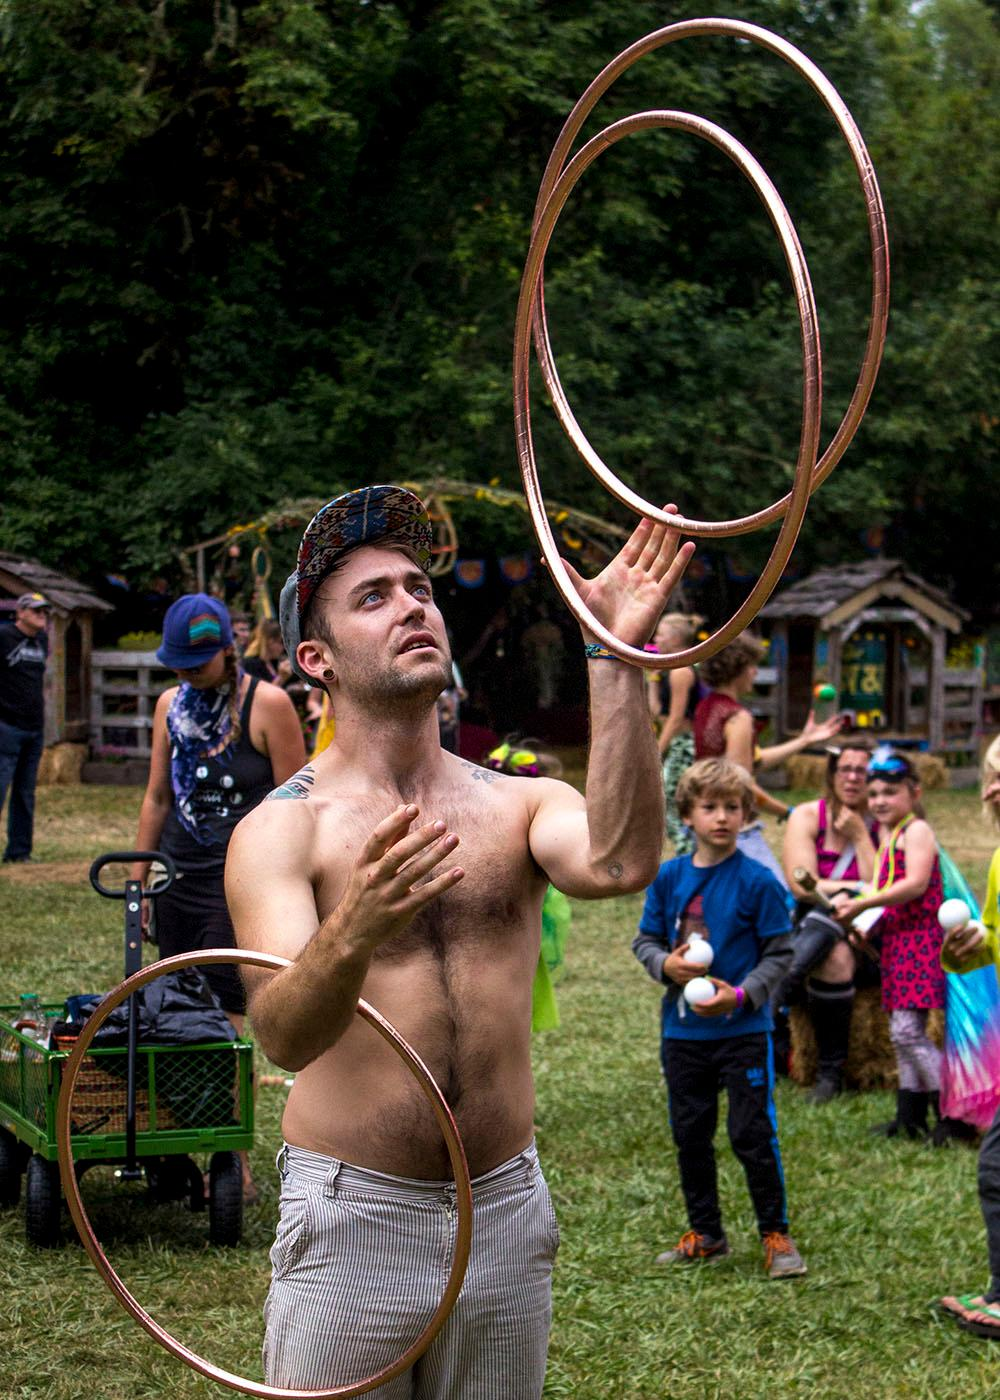 Friday marked the start of the 2016 Oregon Country Fair. The crowd was eager to enjoy the sights and sounds of the fair as soon as the doors opened at 11 a.m. The Oregon Country Fair takes place July 8, 9, and 10 at its traditional location in Veneta, Ore.  (Photo by Amanda Butt)